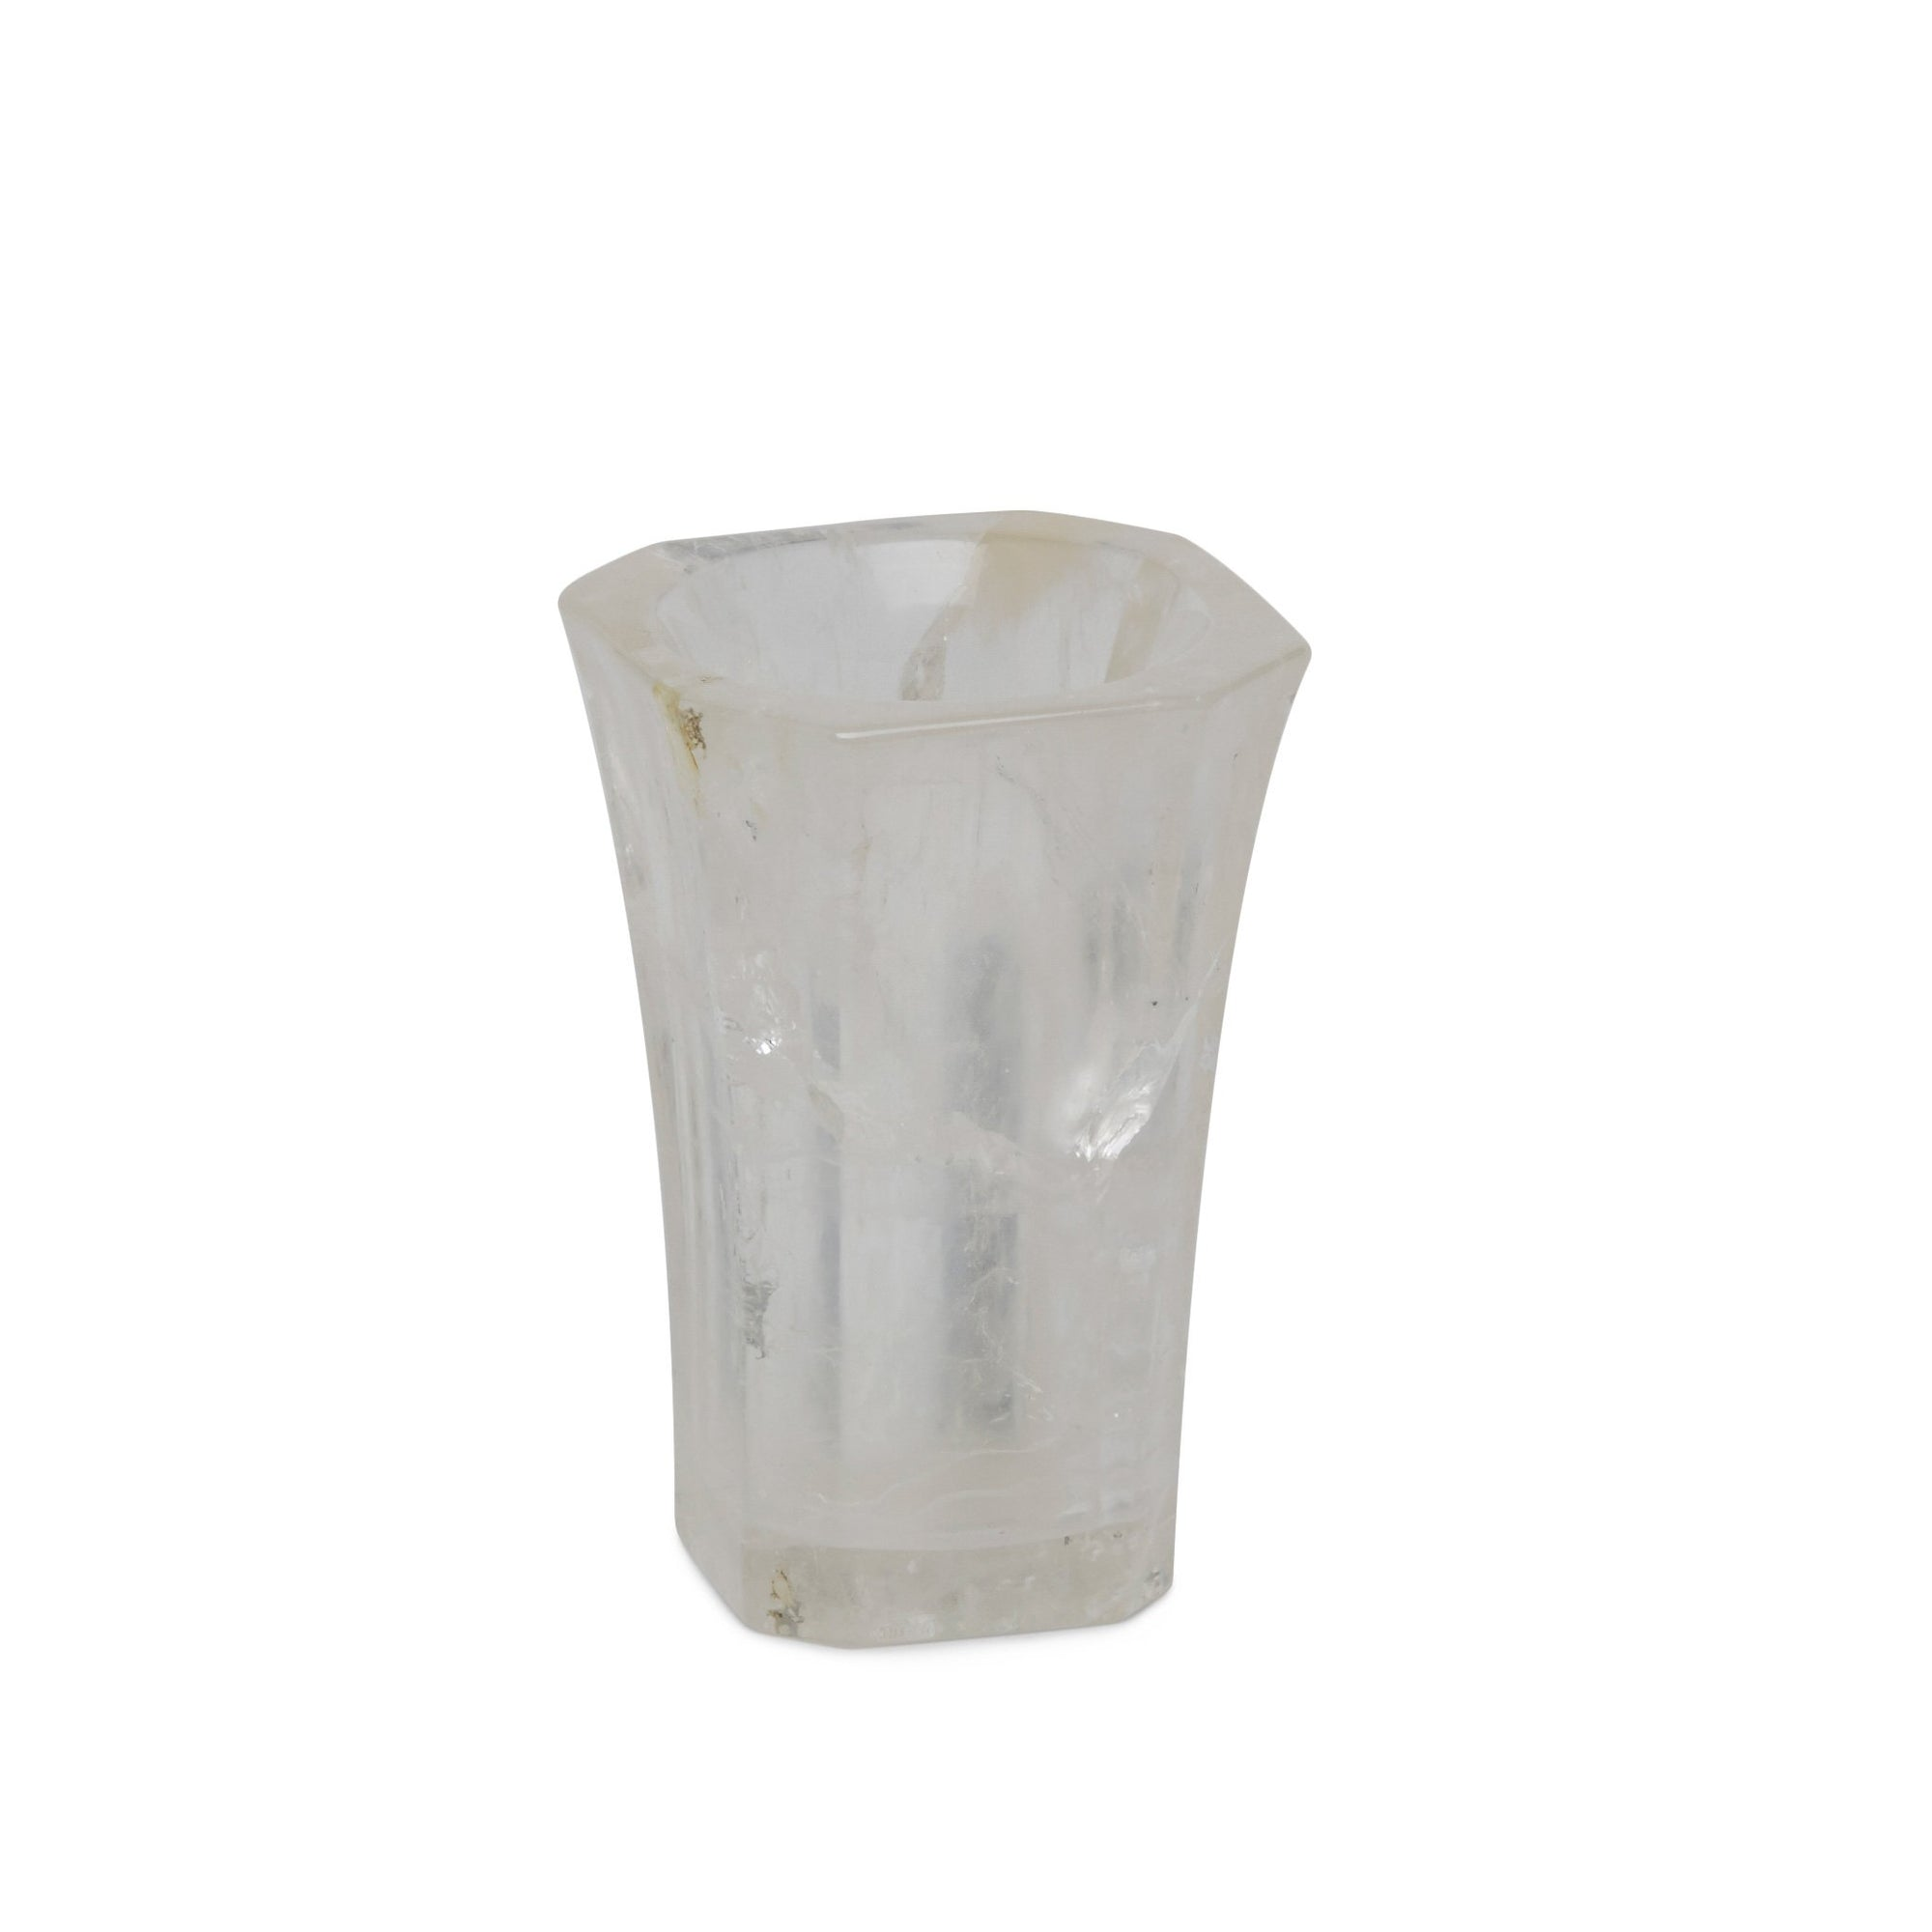 3378-RKCR Sherle Wagner International Stone Harrison Tumbler in Rock Crystal